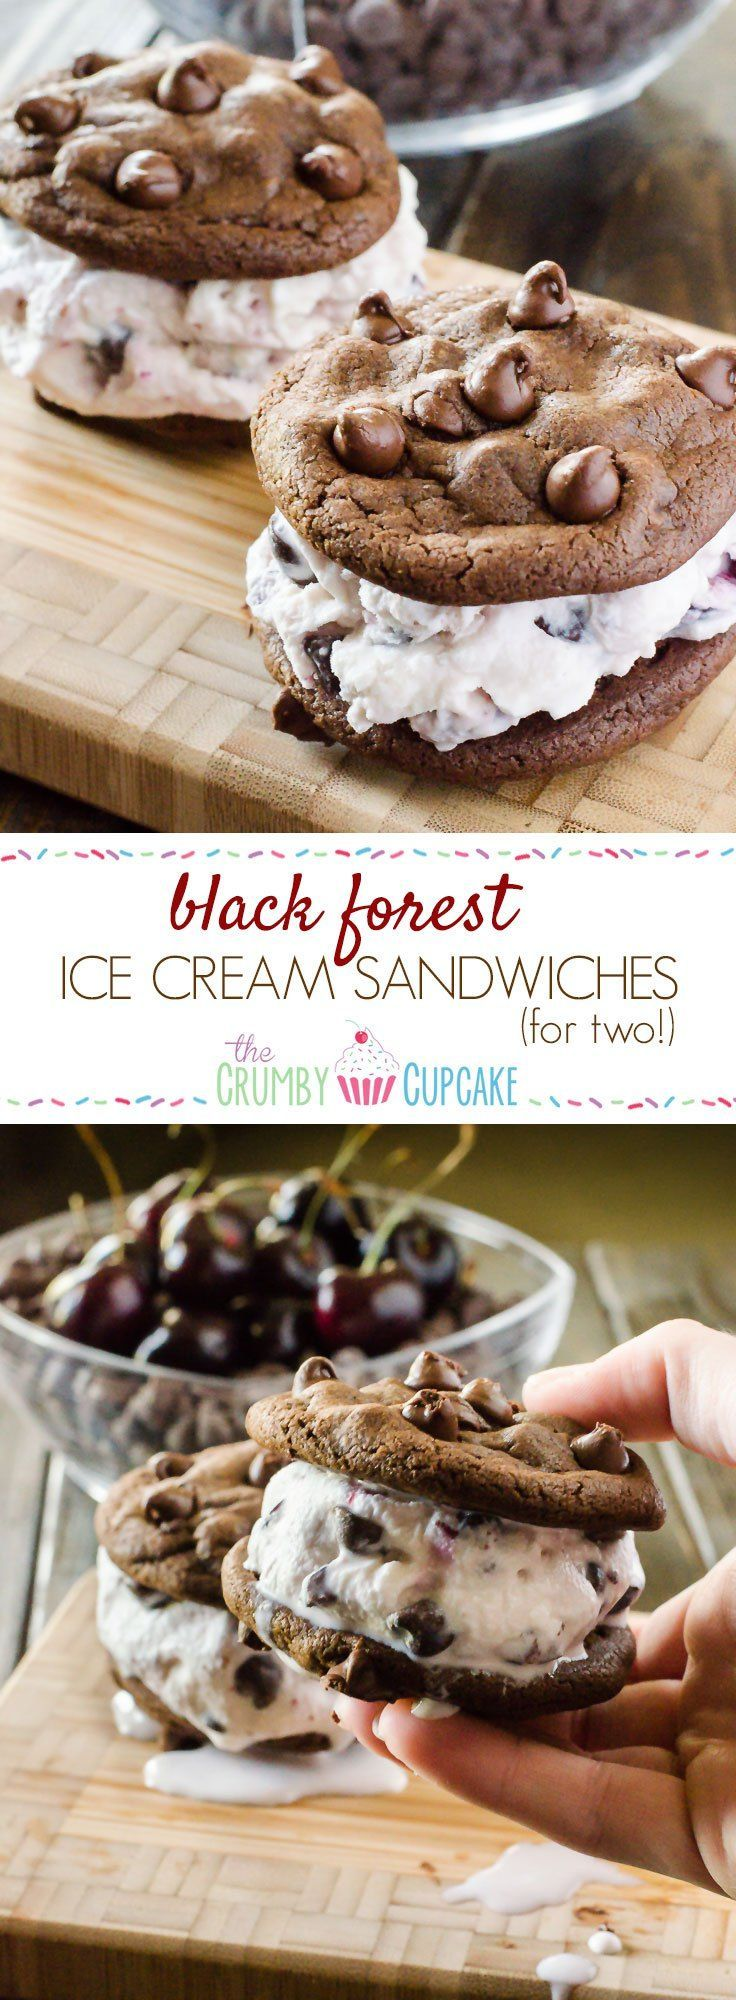 Dying for a cold treat but can't keep them in the house? Whip up these Black Forest Ice Cream Sandwiches for Two and calm your craving! Small batch homemade black forest ice cream sandwiched between two double chocolate chip cookies - summer doesn't get much yummier than this!